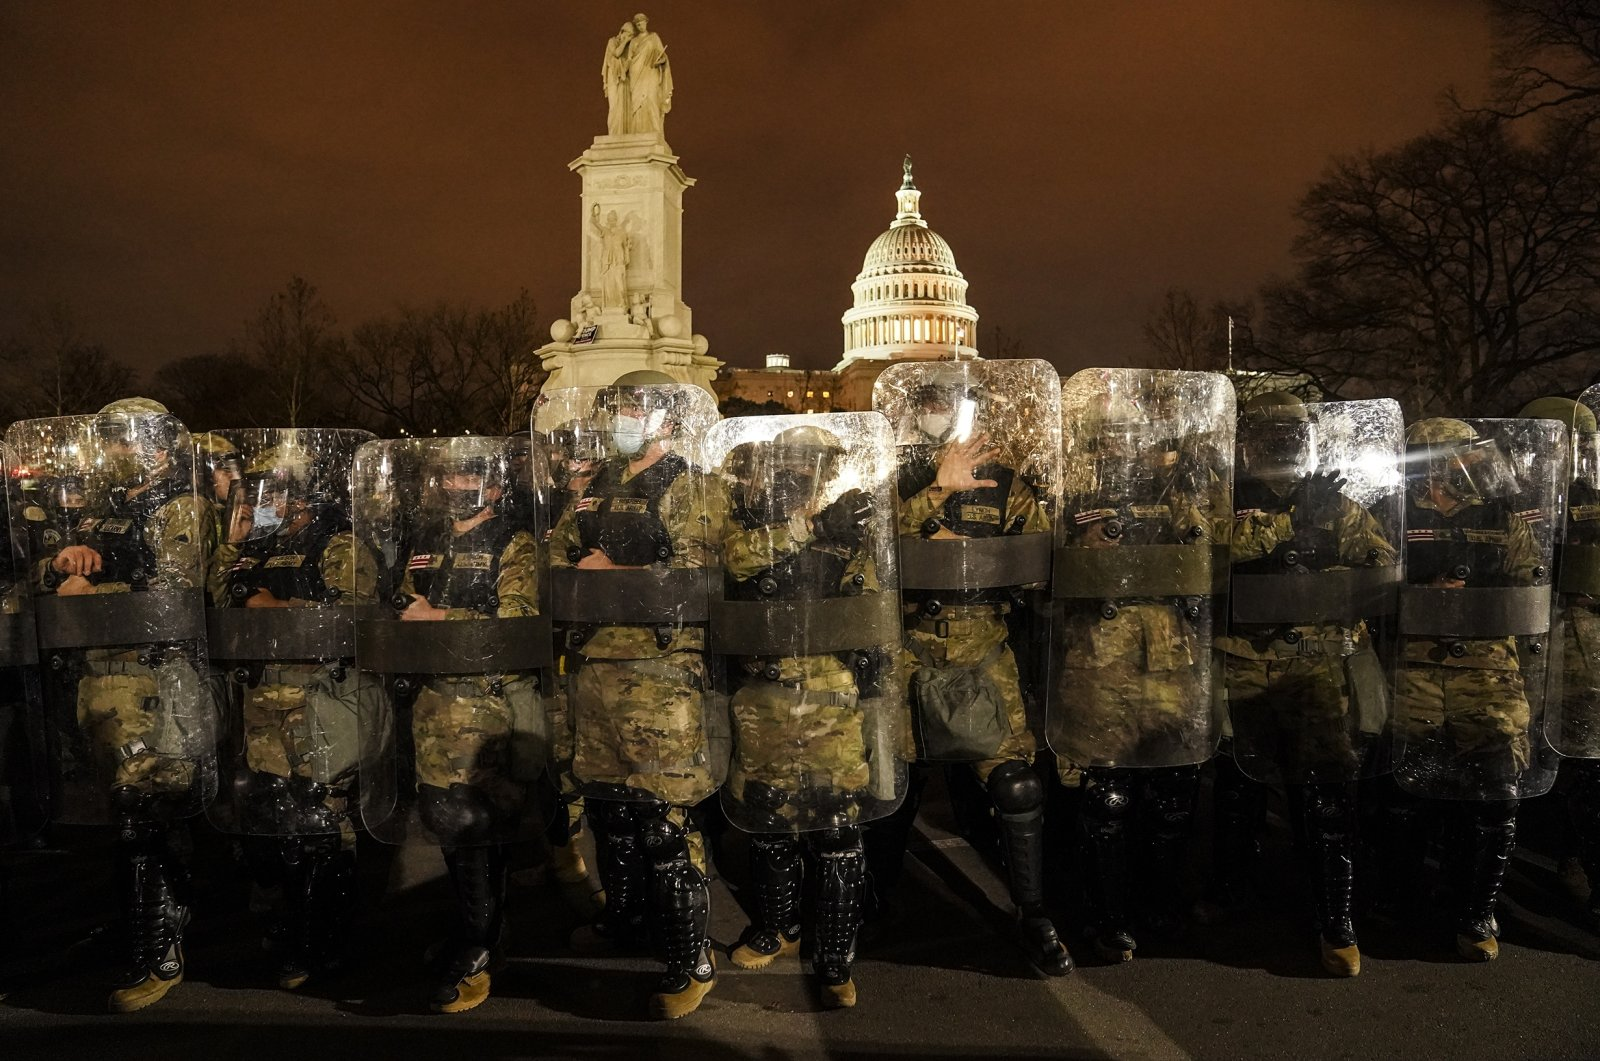 National Guards stand outside the U.S. Capitol, after a day of storming, Washington, D.C., U.S., Jan. 6, 2021. (AP Photo)